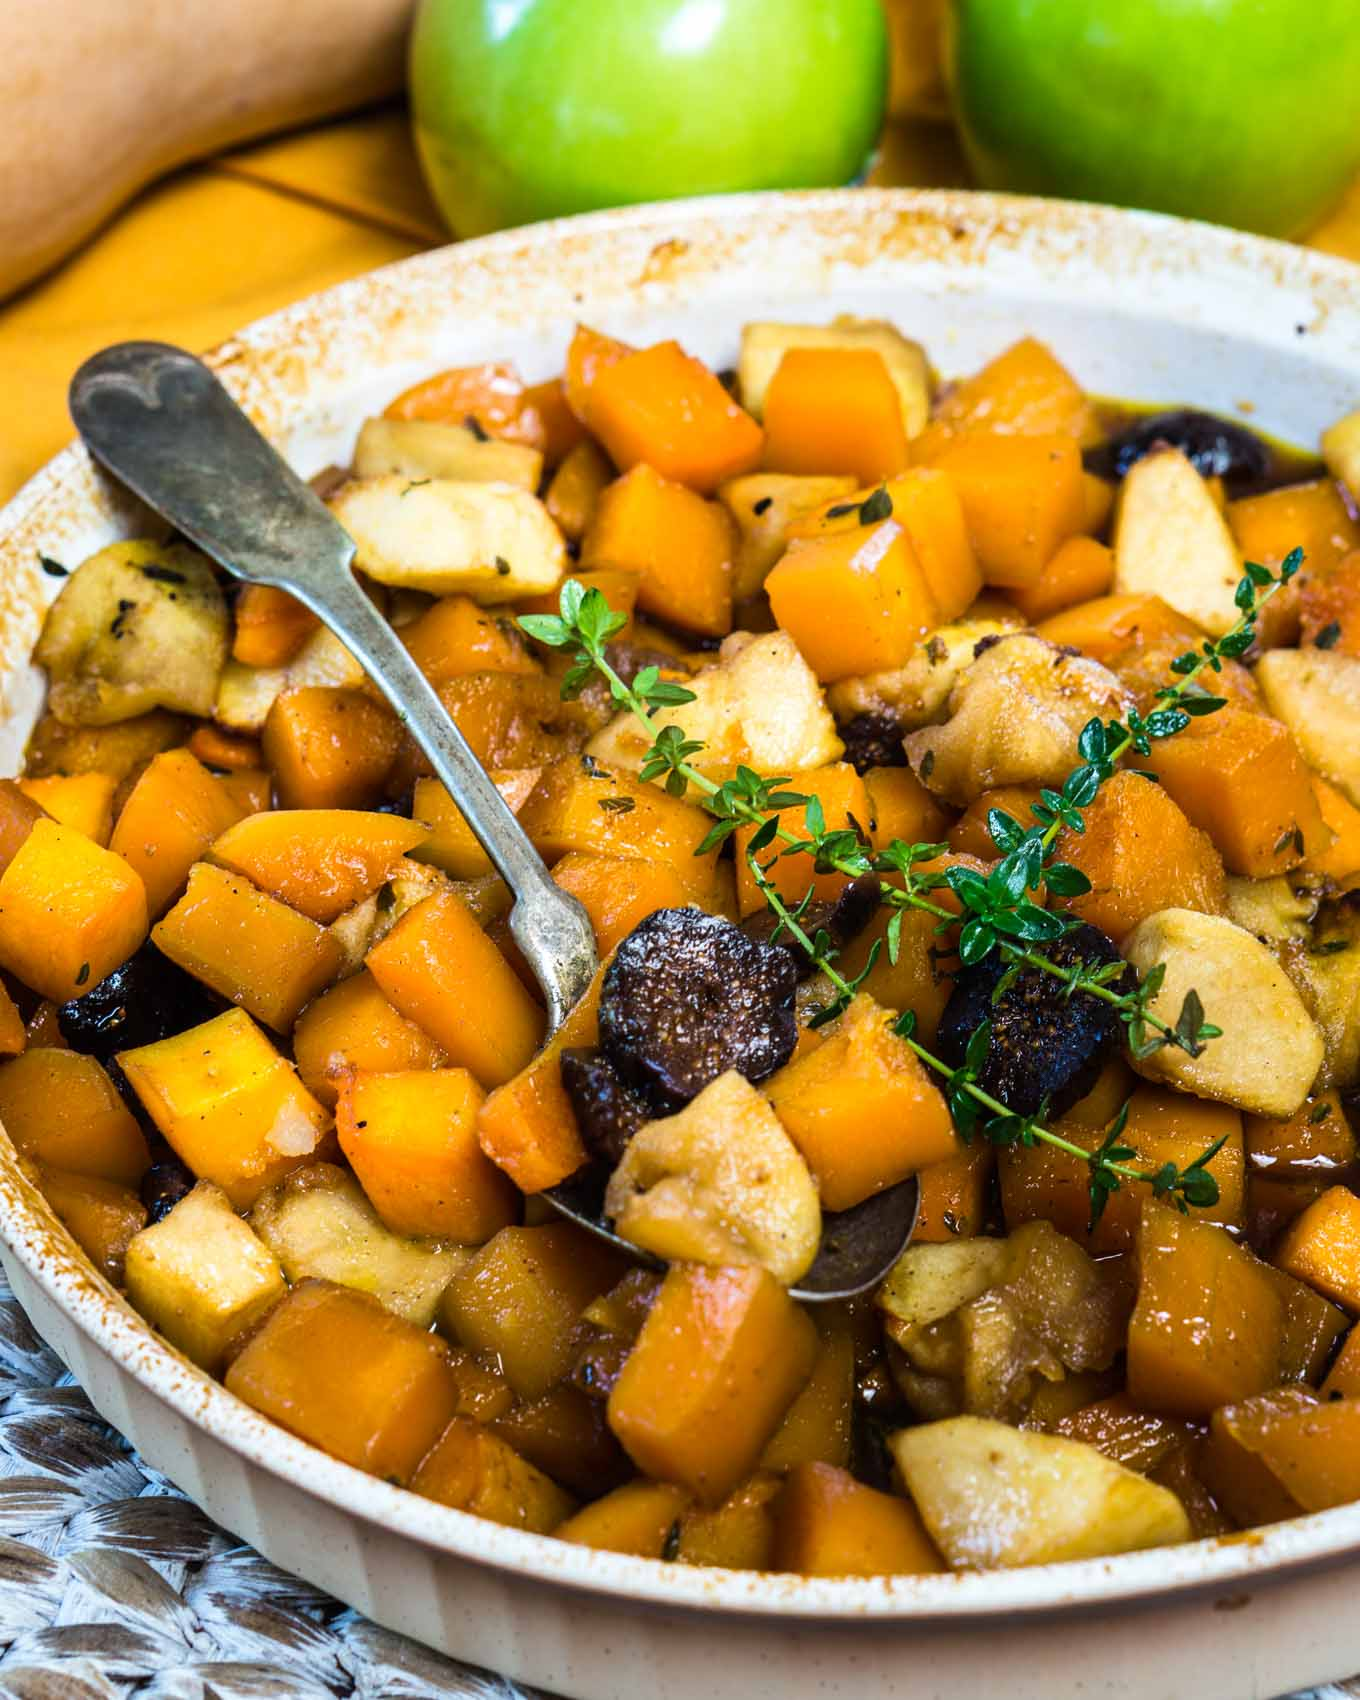 Baked Butternut Squash with Apples and Figs is warm, sweet, and buttery.  It tastes like it's loaded with fat and calories but neither one is welcomed in this dish. It's perfect for a casual dinner or dressed for the holidays because it's easy to put together and everyone will love it. | HostessAtHeart.com